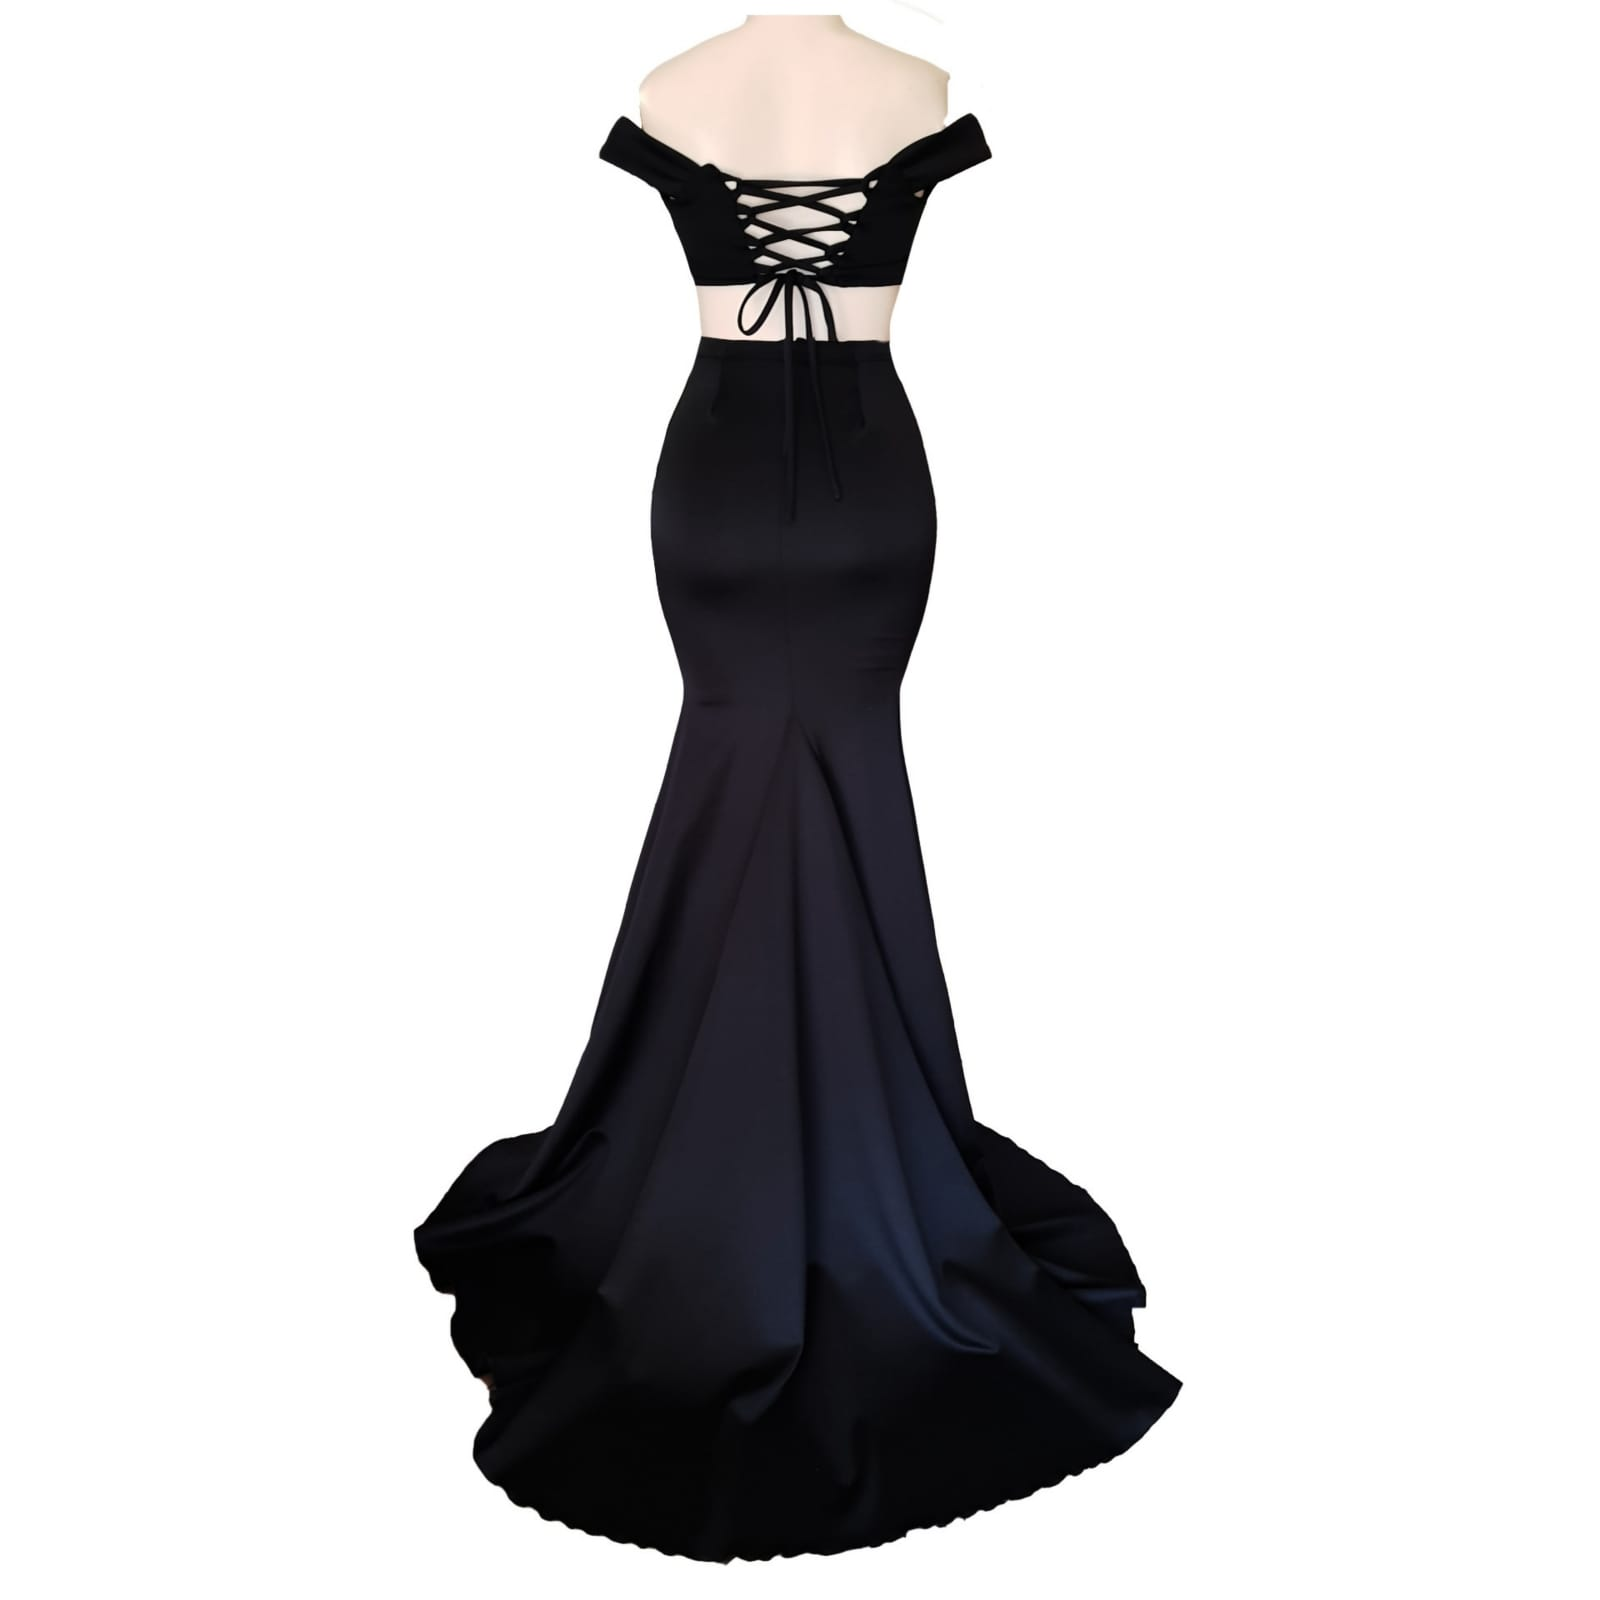 2 piece black off shoulder matric dance dress with a crop top 7 2 piece black off shoulder matric dance dress with a crop top. Lace-up back. Long skirt with knee length slit and a train.